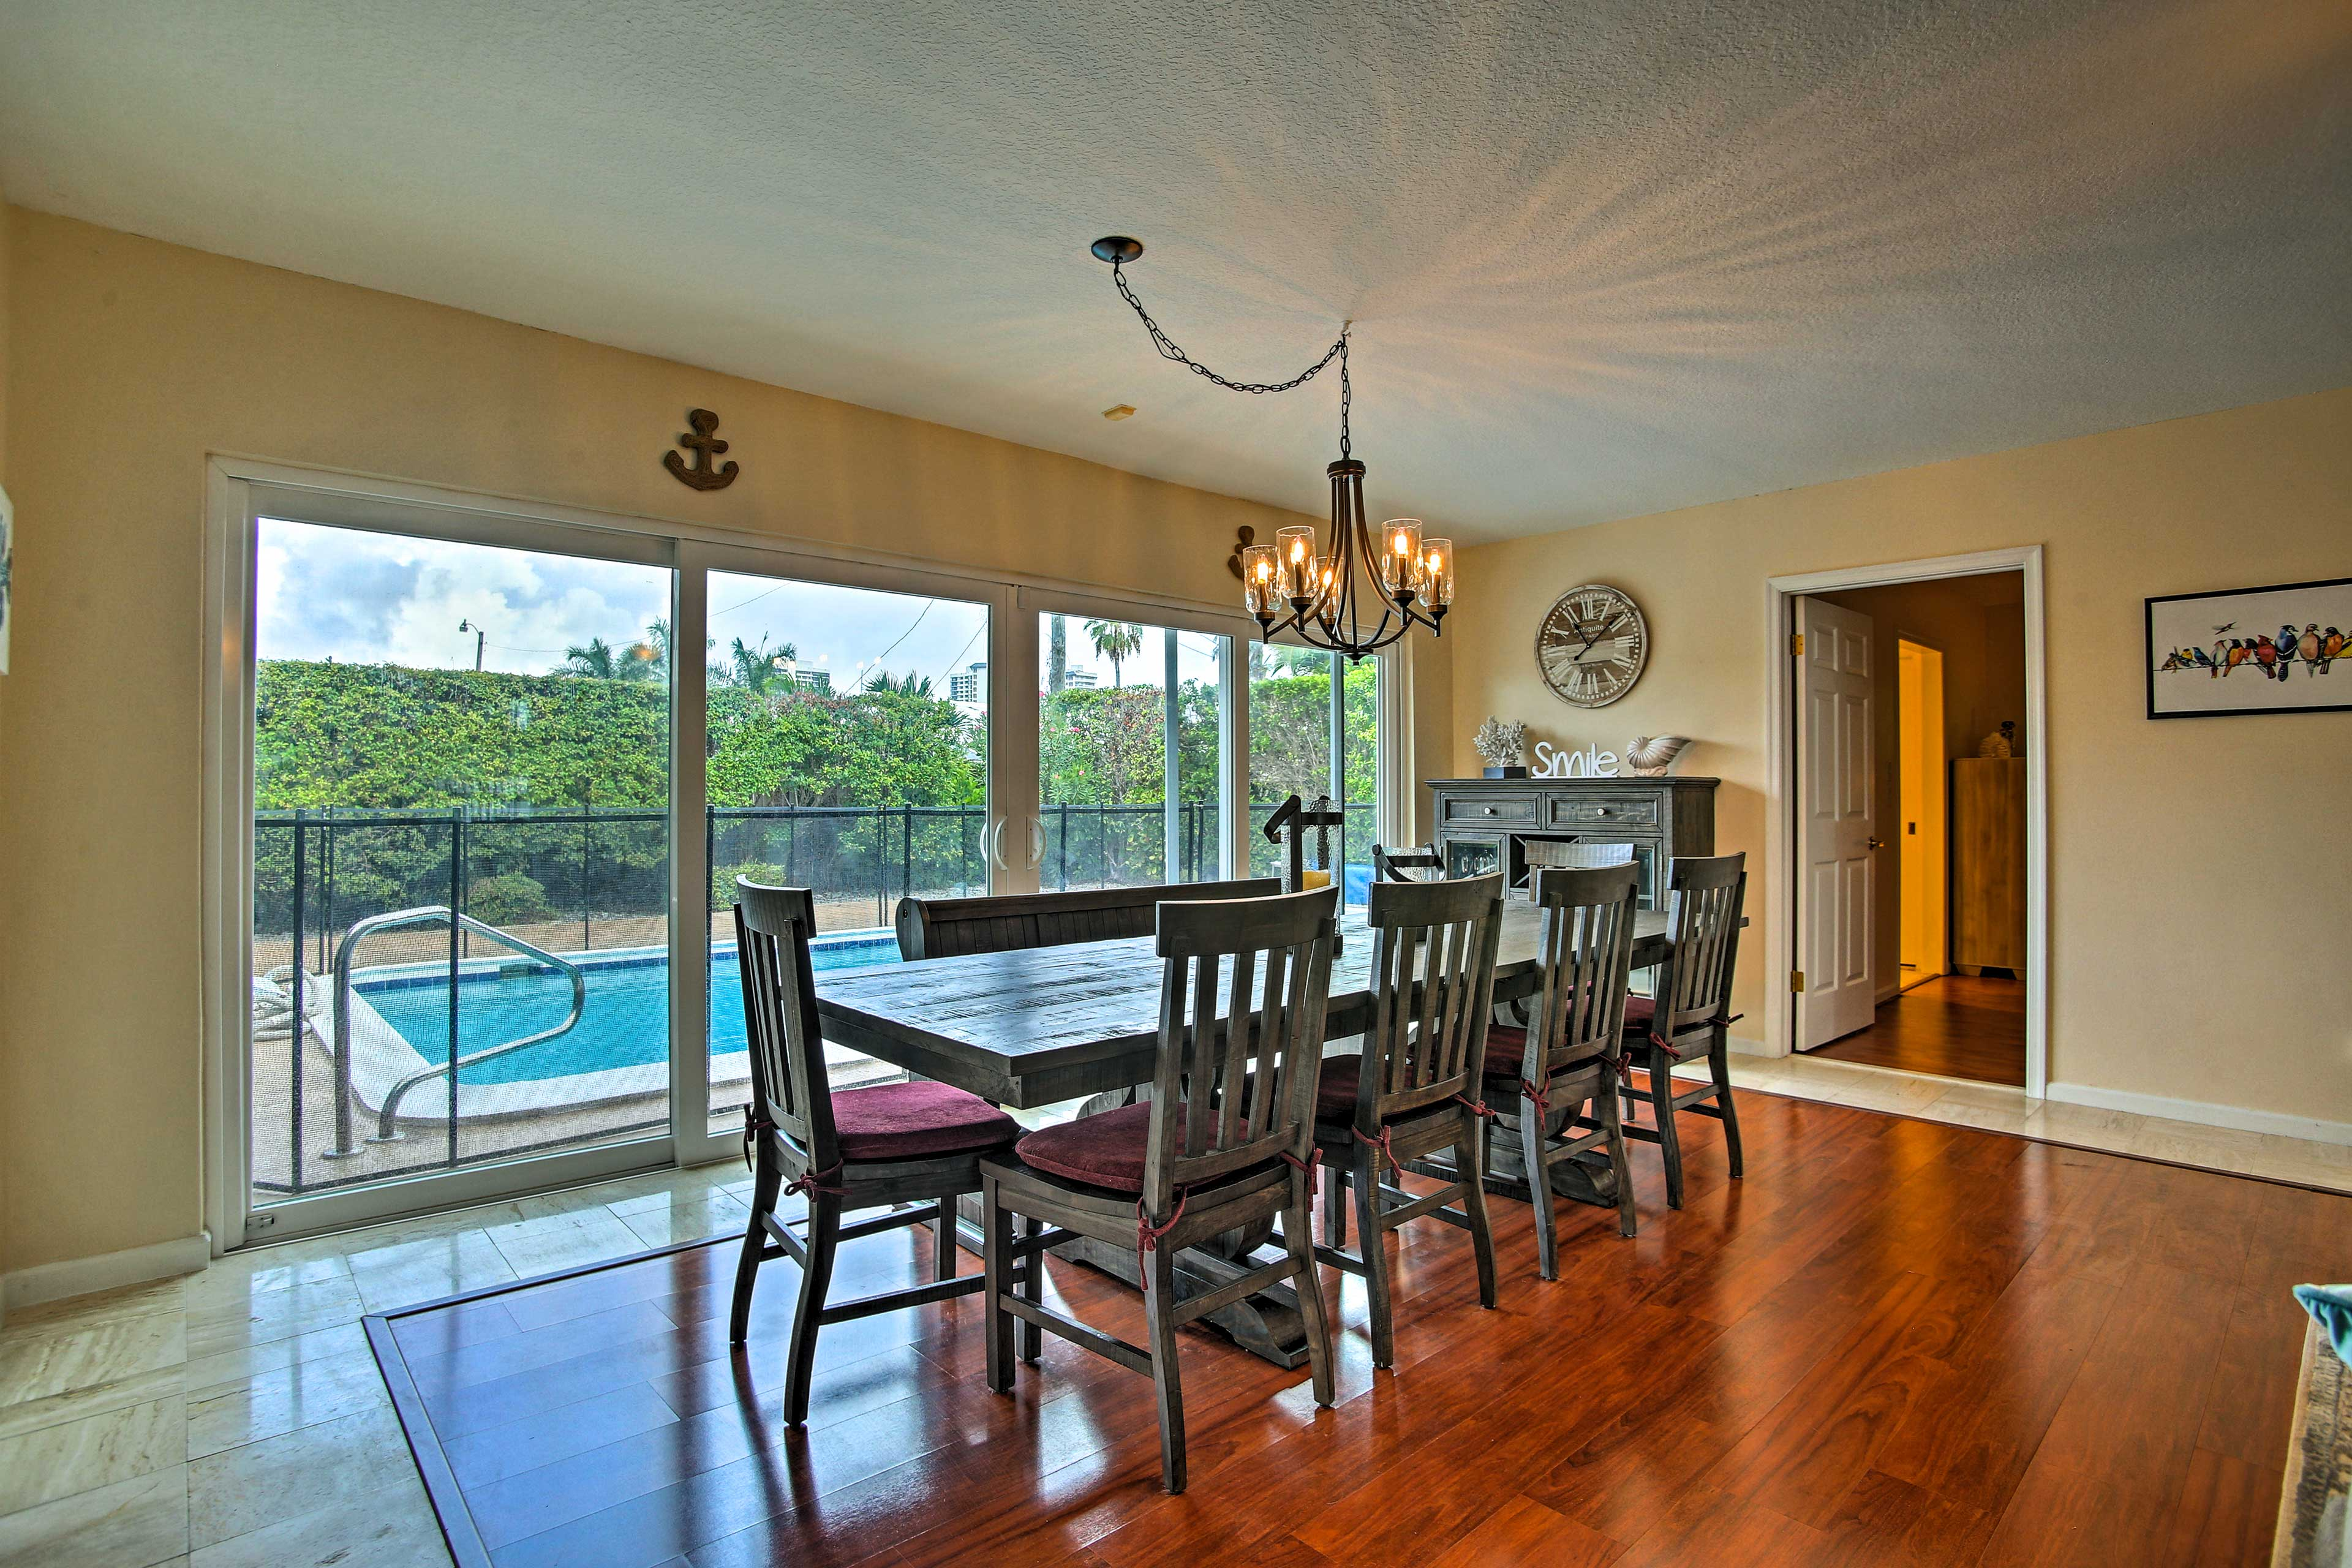 The large sliding-glass doors give off tons of natural light.